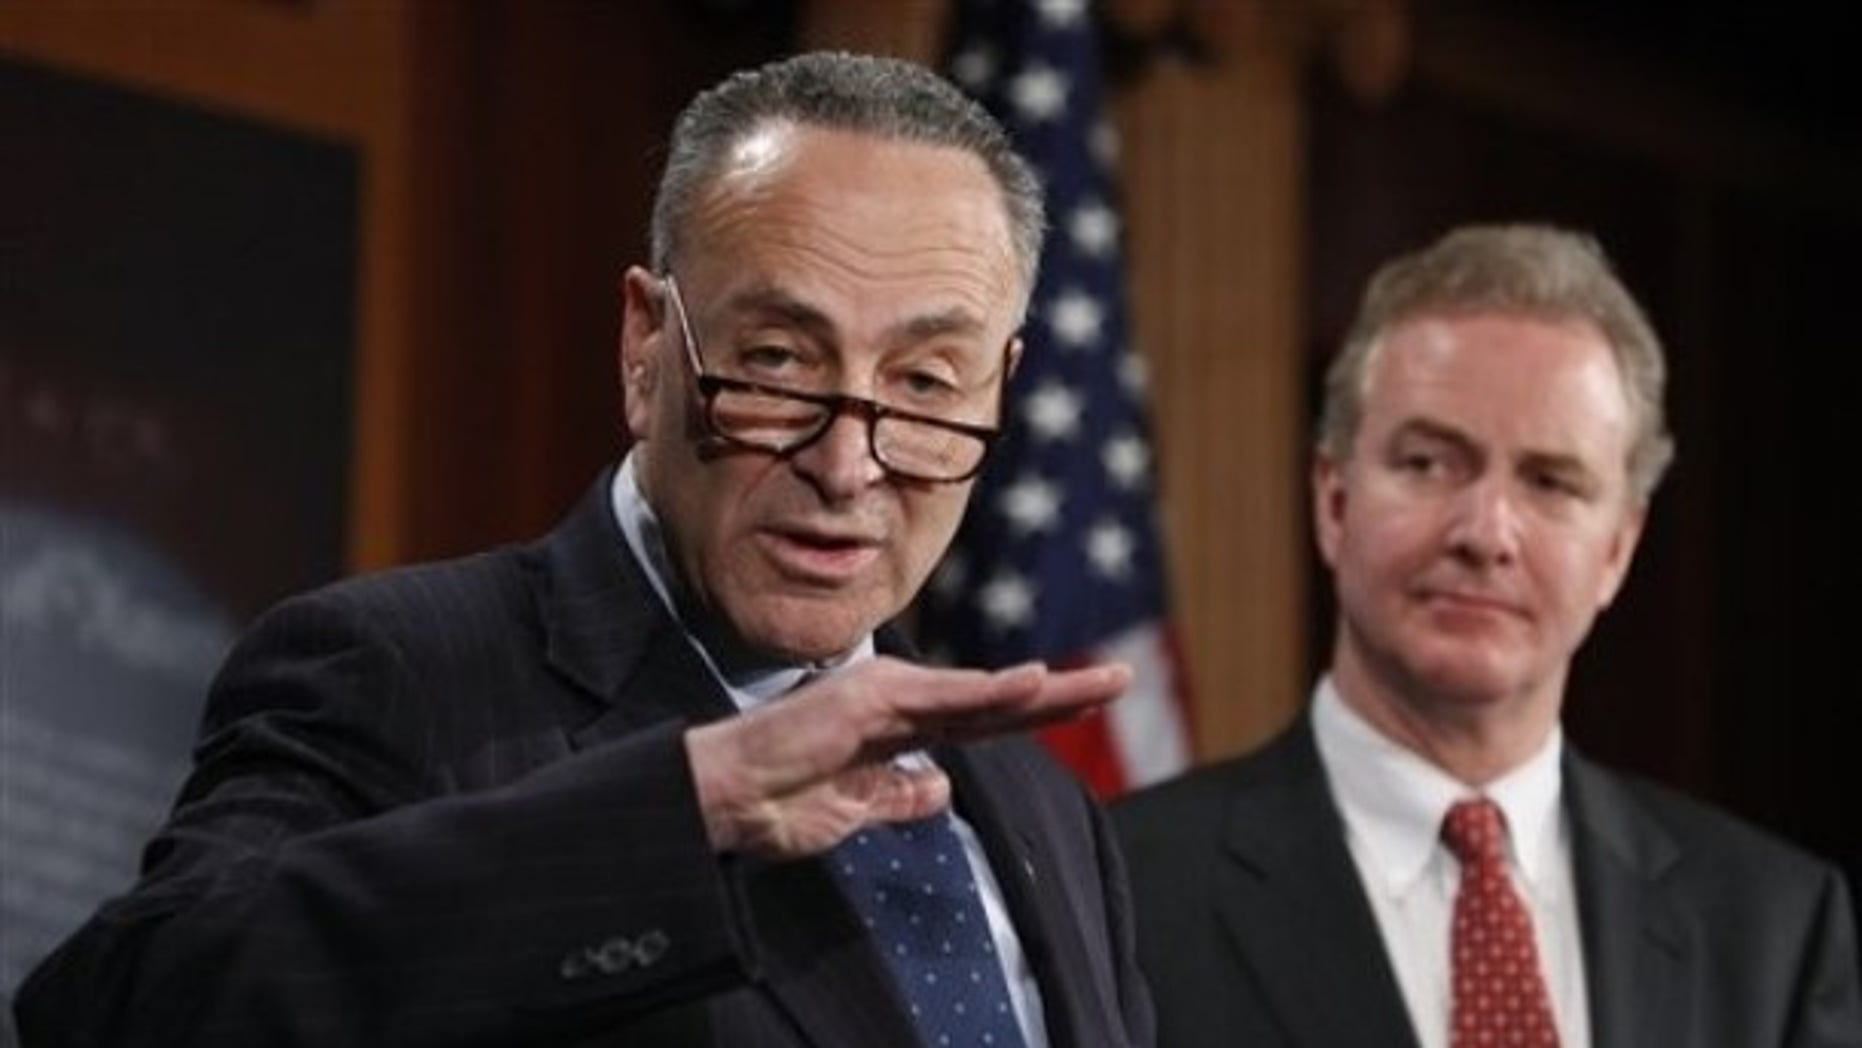 Sen. Charles Schumer, D-N.Y., left,  accompanied by Rep. Chris Van Hollen, D-Md., gestures during a  news conference introducing a bill to undo the Supreme Court's Citizens United ruling, Thursday, Feb. 11, 2010, on Capitol Hill in Washington.  (AP Photo/Manuel Balce Ceneta)